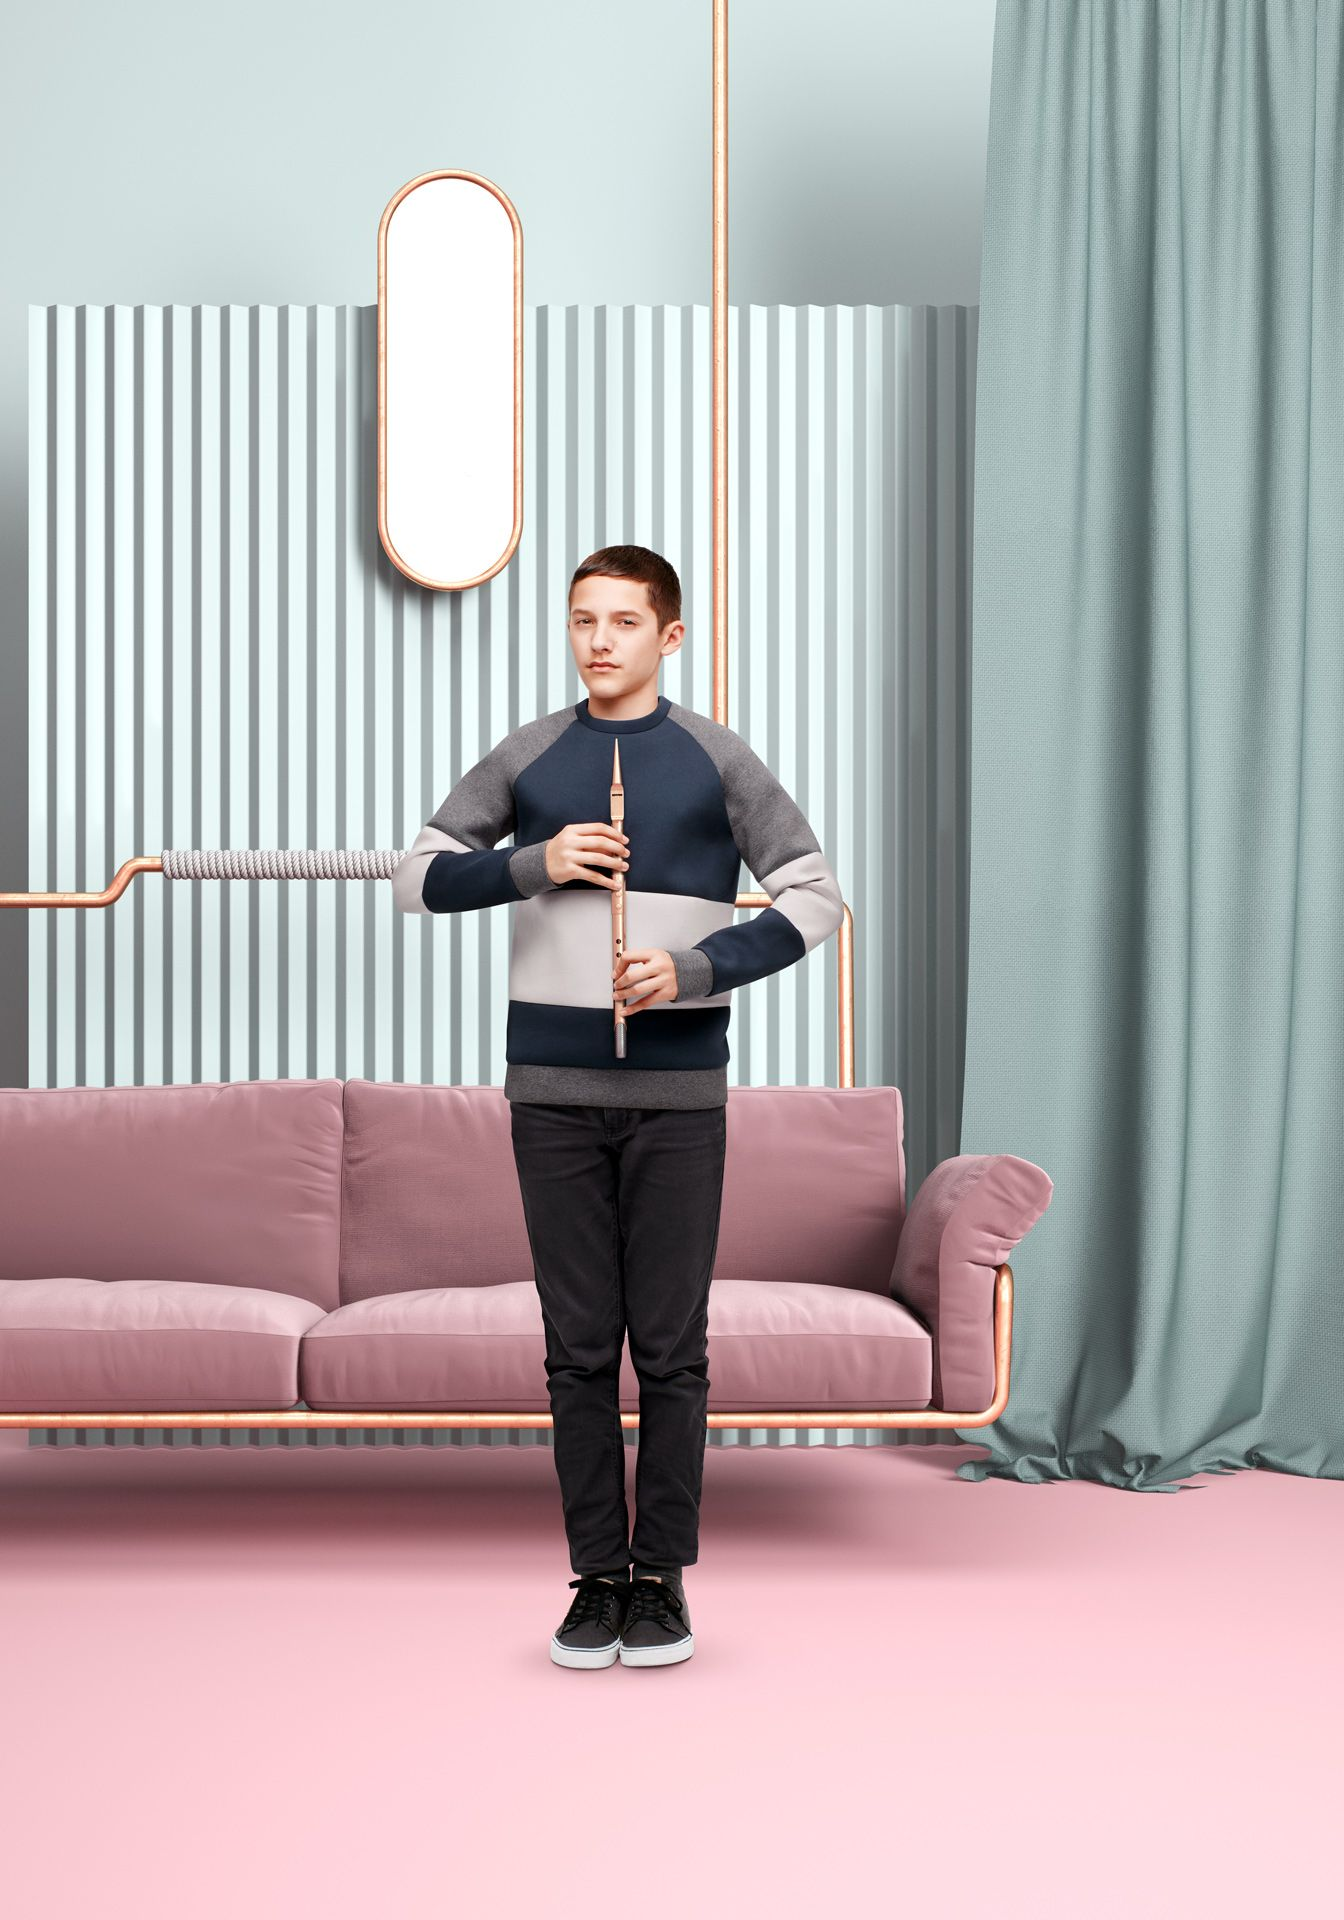 young boy holding flute with two hands looking at camera in front of pink couch held by copper pipes textured background and dark turquoise drapes by Simon Duhamel for Bloom Maestro